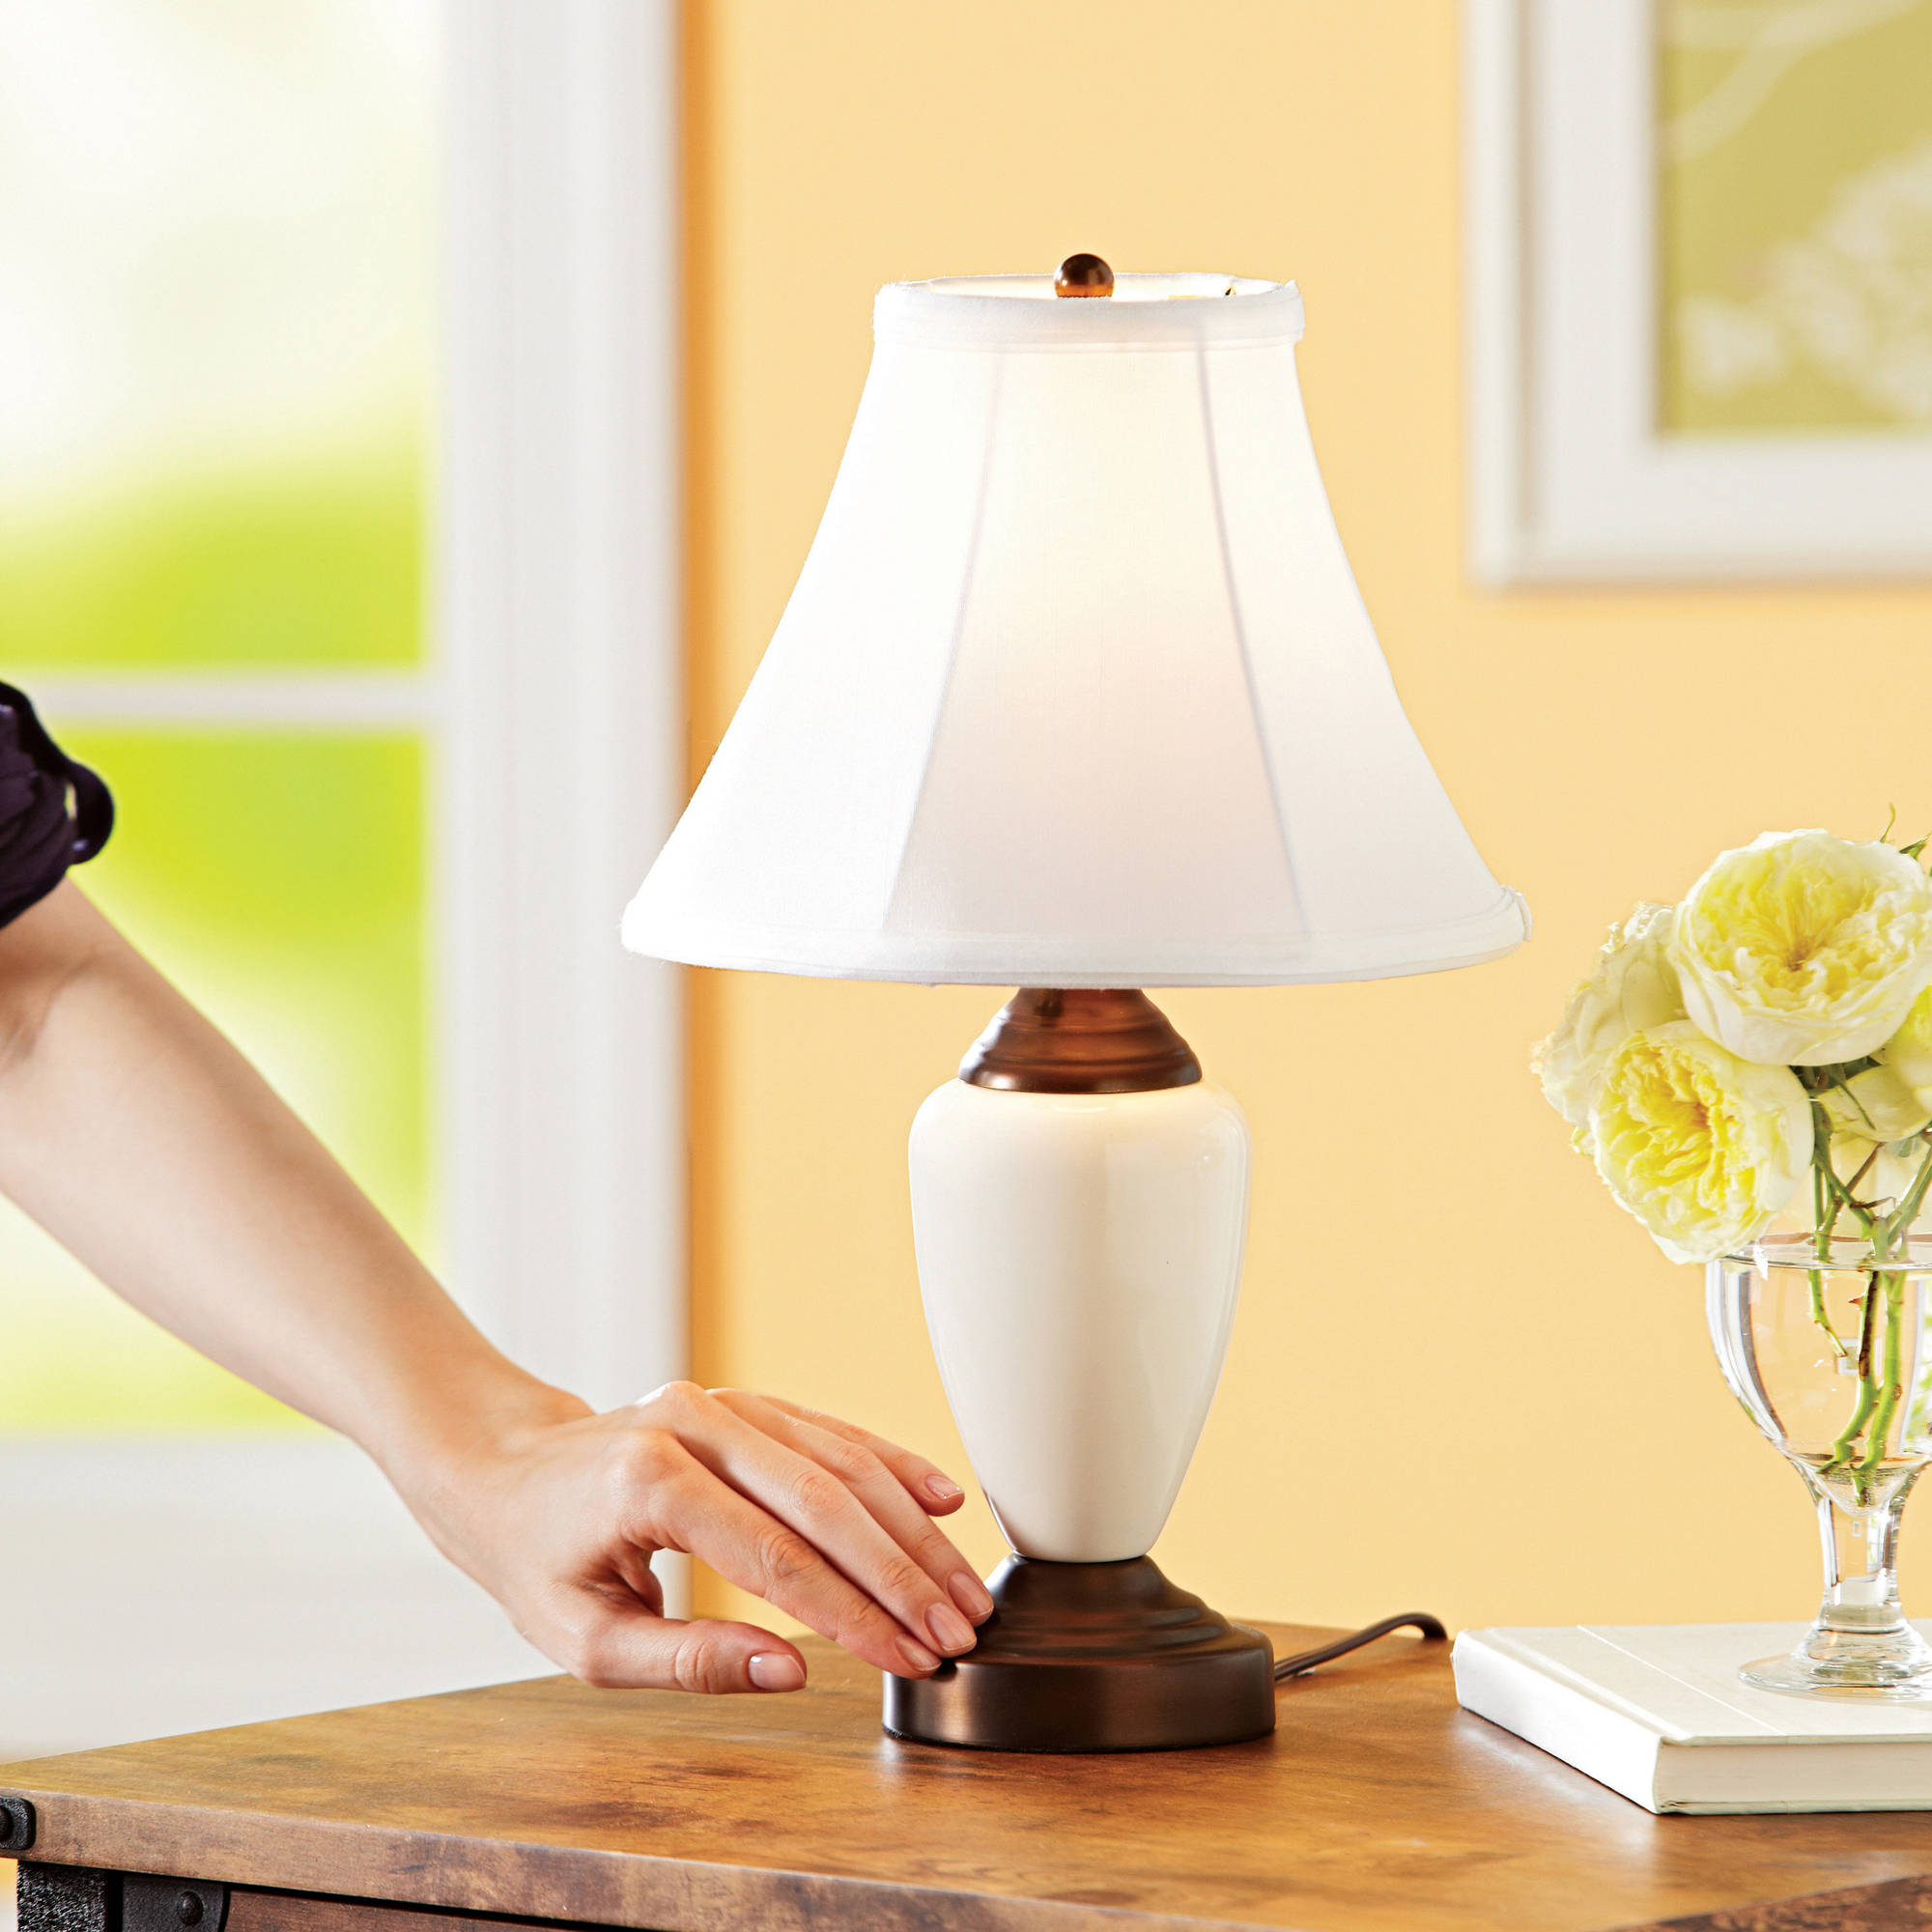 Better homes and gardens touch lamp multiple colors walmart geotapseo Images